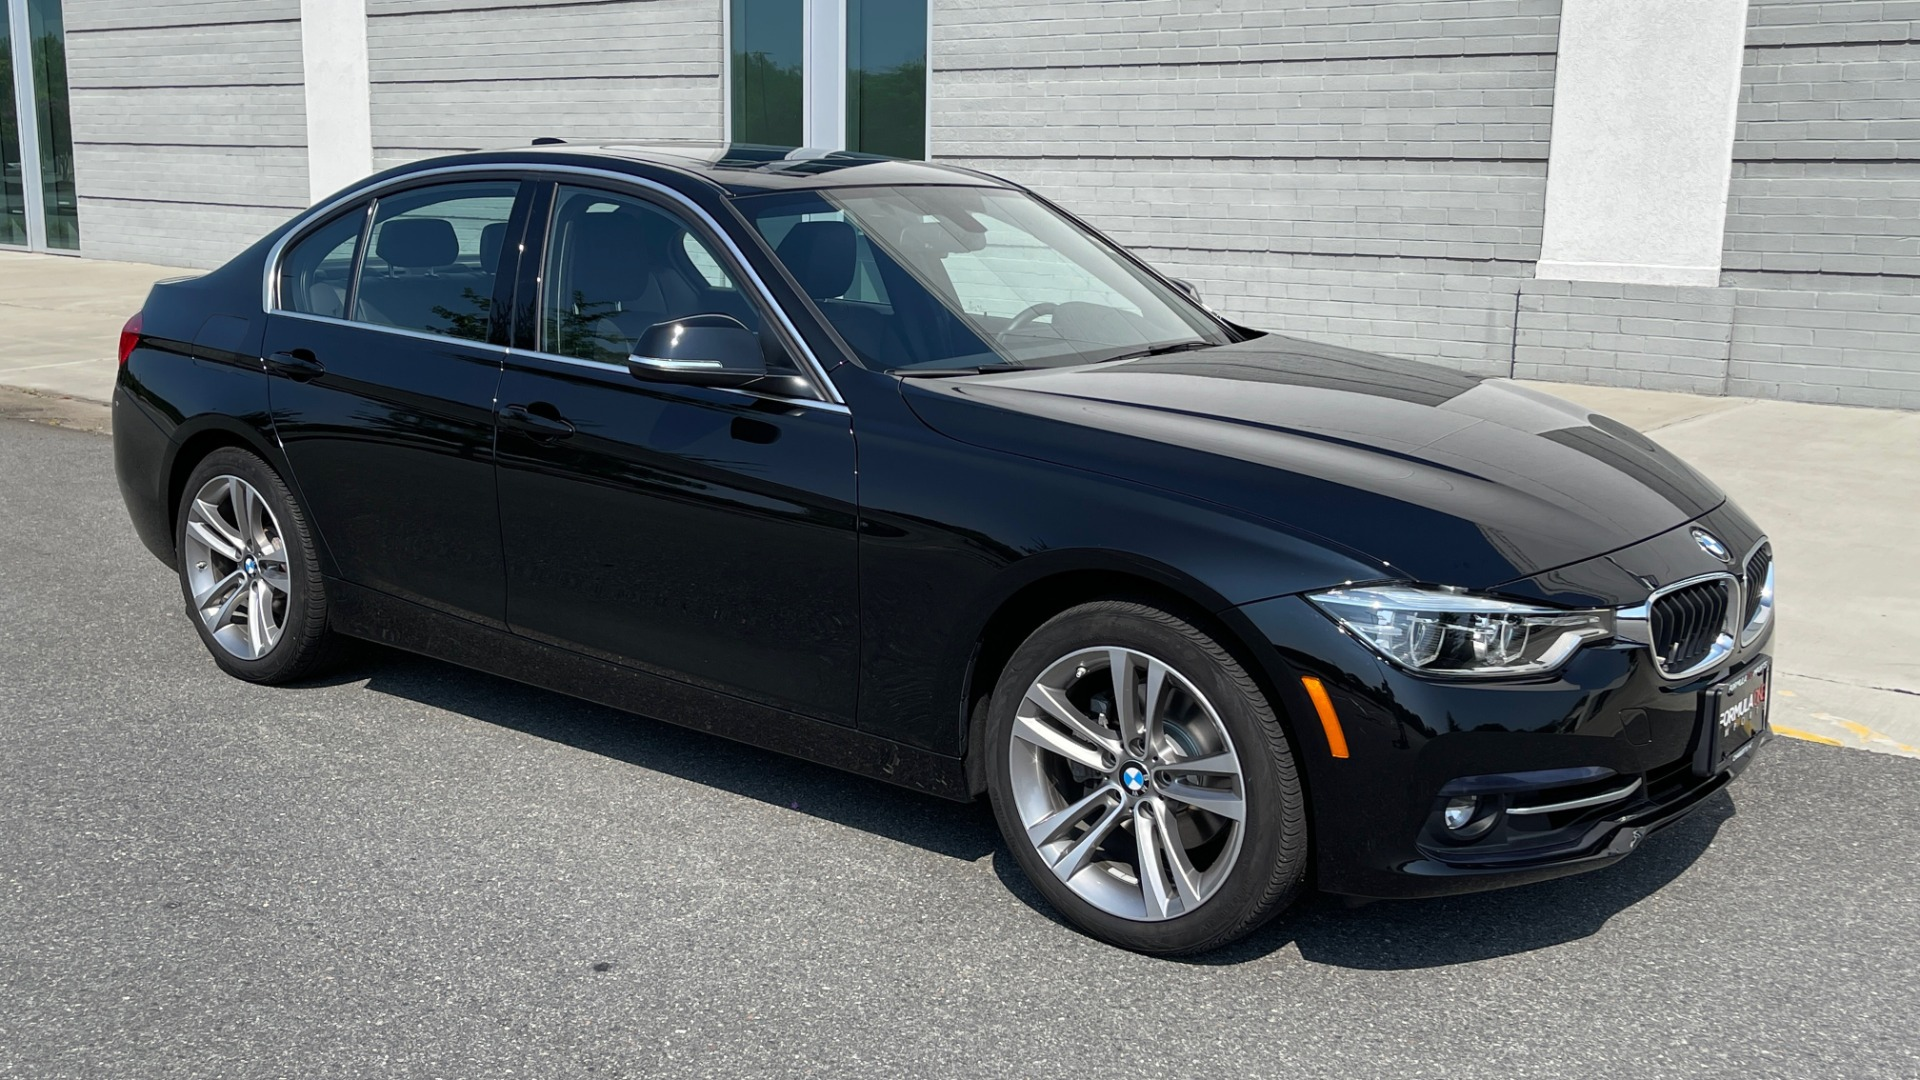 Used 2018 BMW 3 SERIES 330I XDRIVE / CONV PKG / SUNROOF / HTD STS / ABSD / REARVIEW for sale $30,695 at Formula Imports in Charlotte NC 28227 6